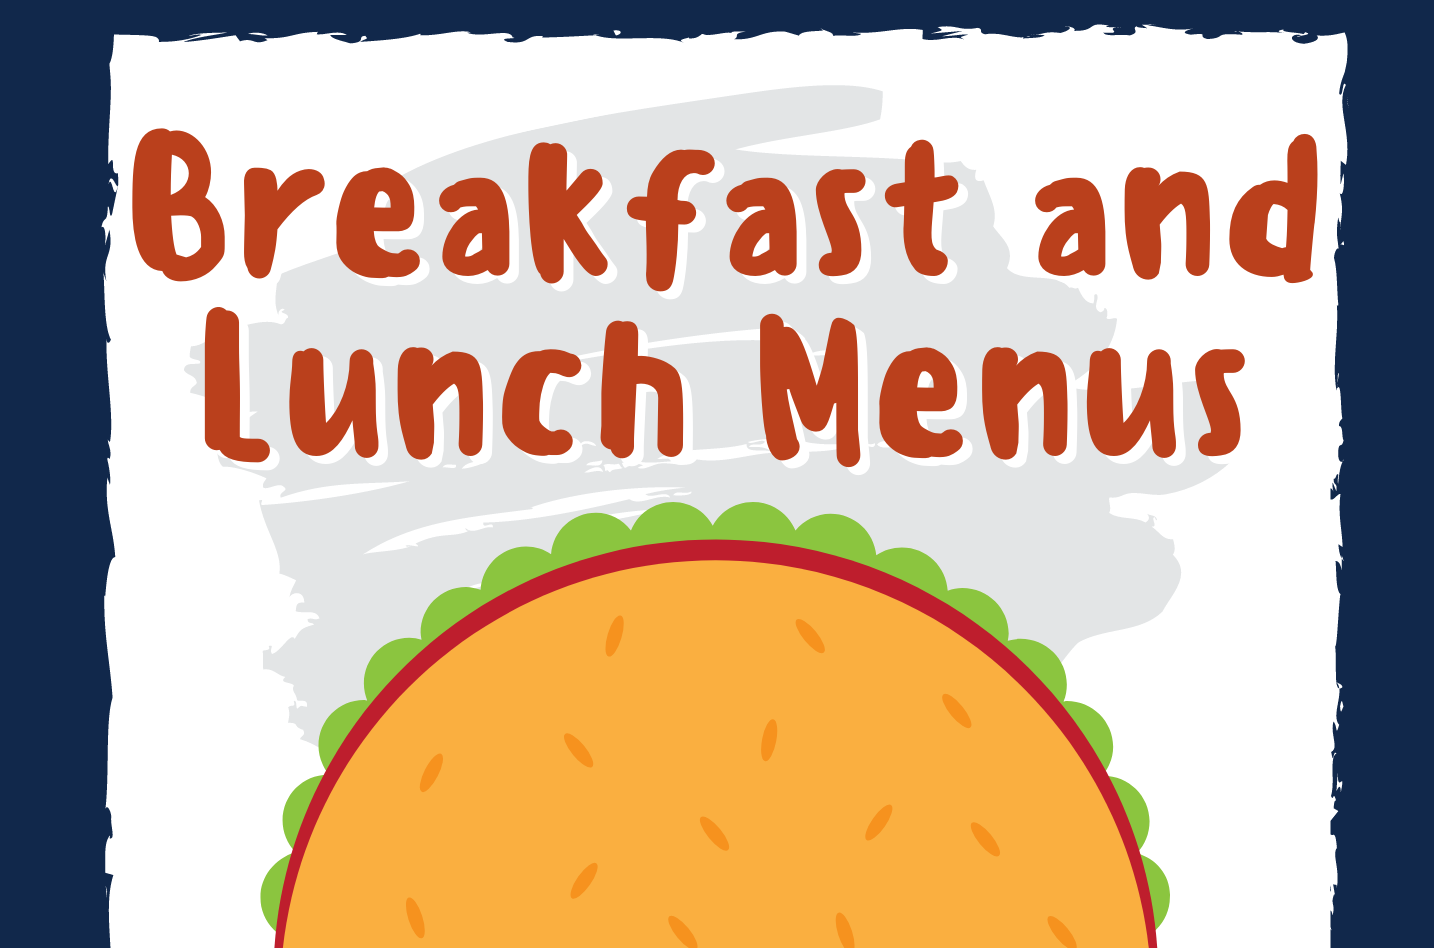 Breakfast/Lunch Menu